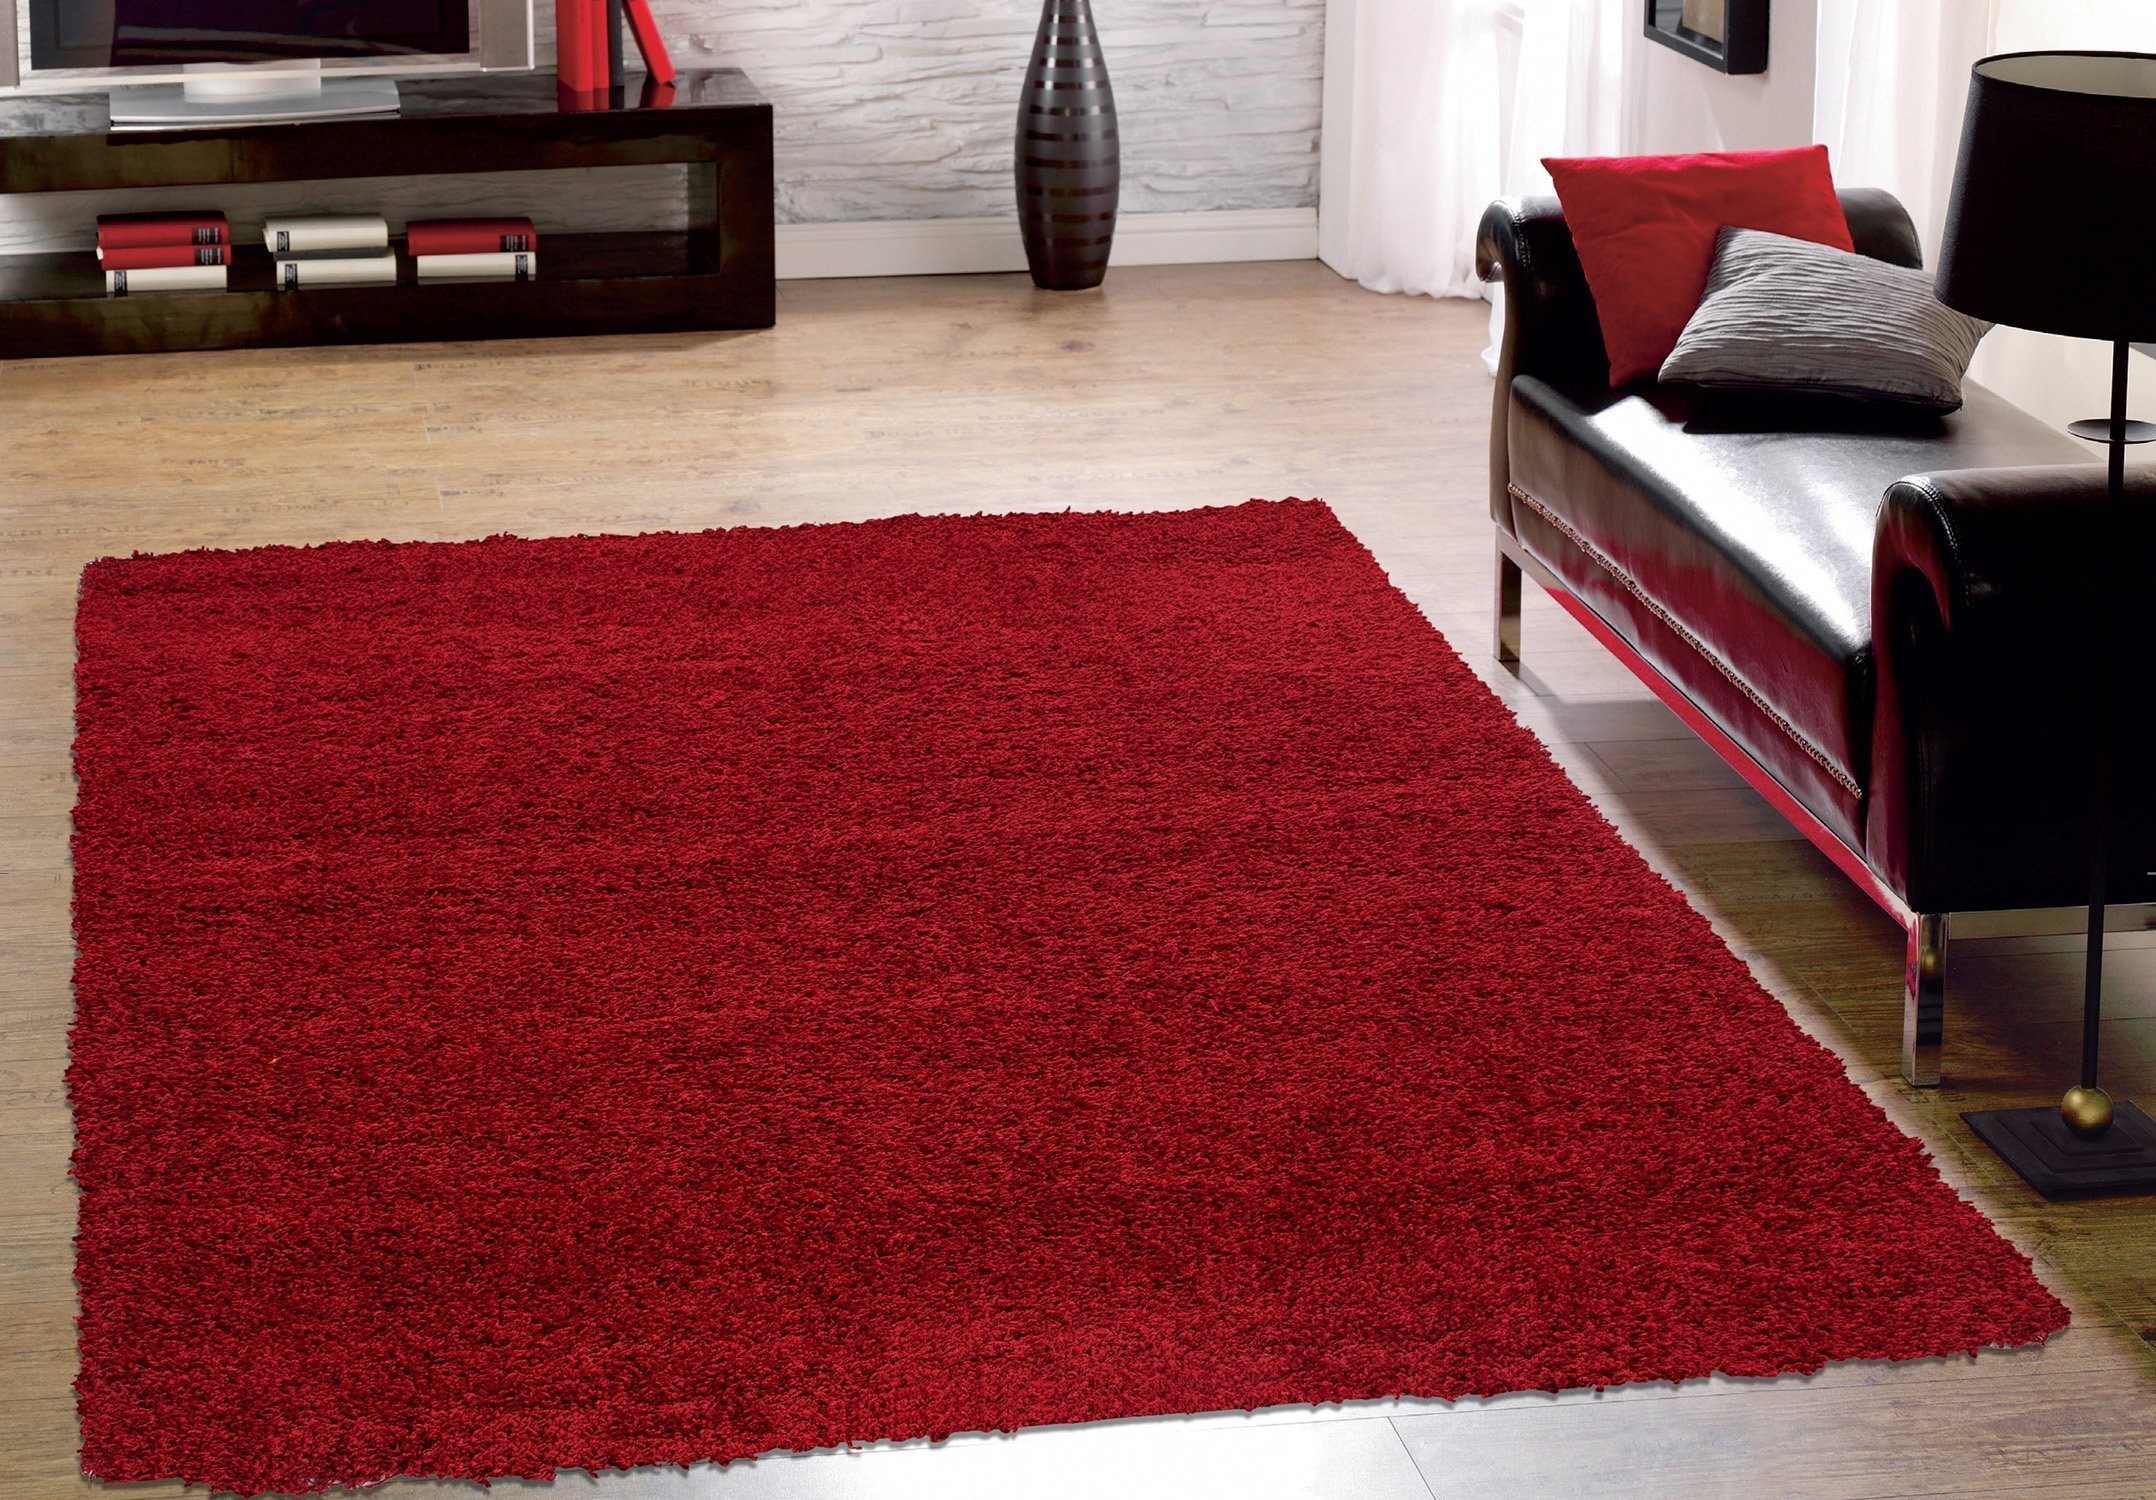 Sweet Home Stores Cozy Shag Collection Solid Shag Rug, 5'3'' X 7', Red Color